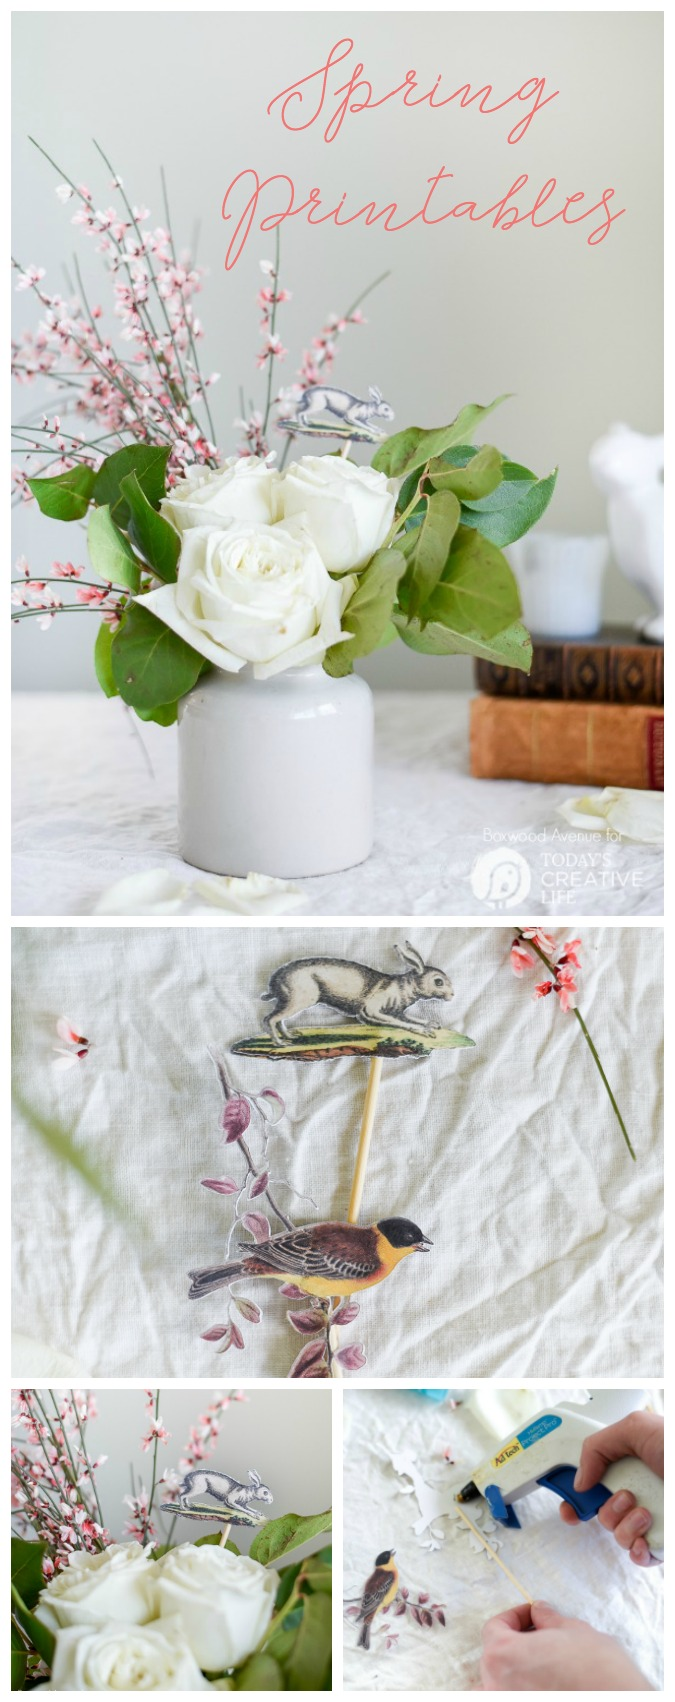 Easter Printables for Spring Bouquets | Spring decorating made easy! Use your Cricut Explore to make it more creative. Easy home decorating ideas for DIY spring decorating. Click the photo for your free printable. Today's Creative Life